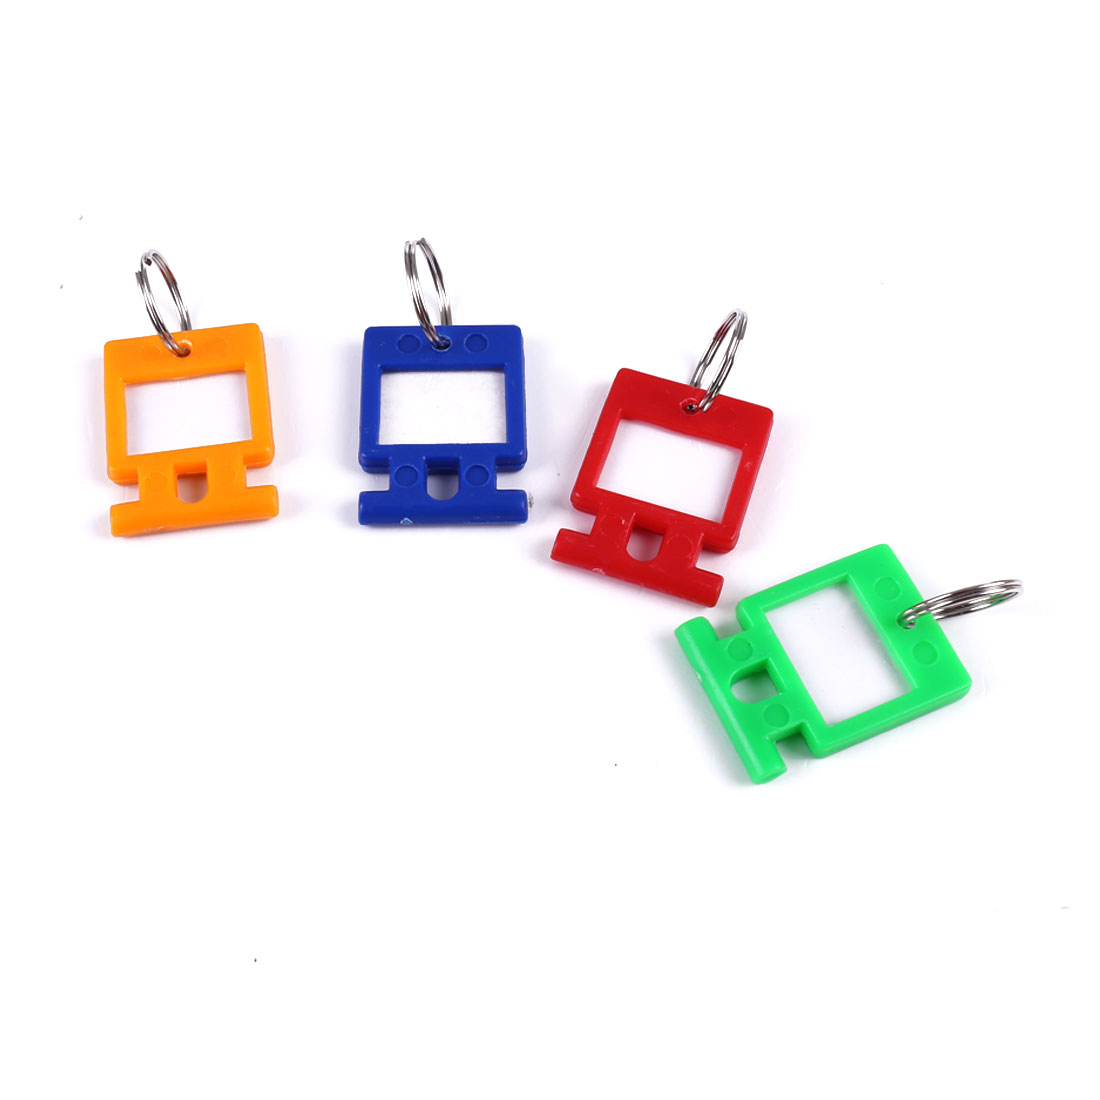 4 Pcs Colorful Plastic Name Tag Badge Clip Holder Keyring